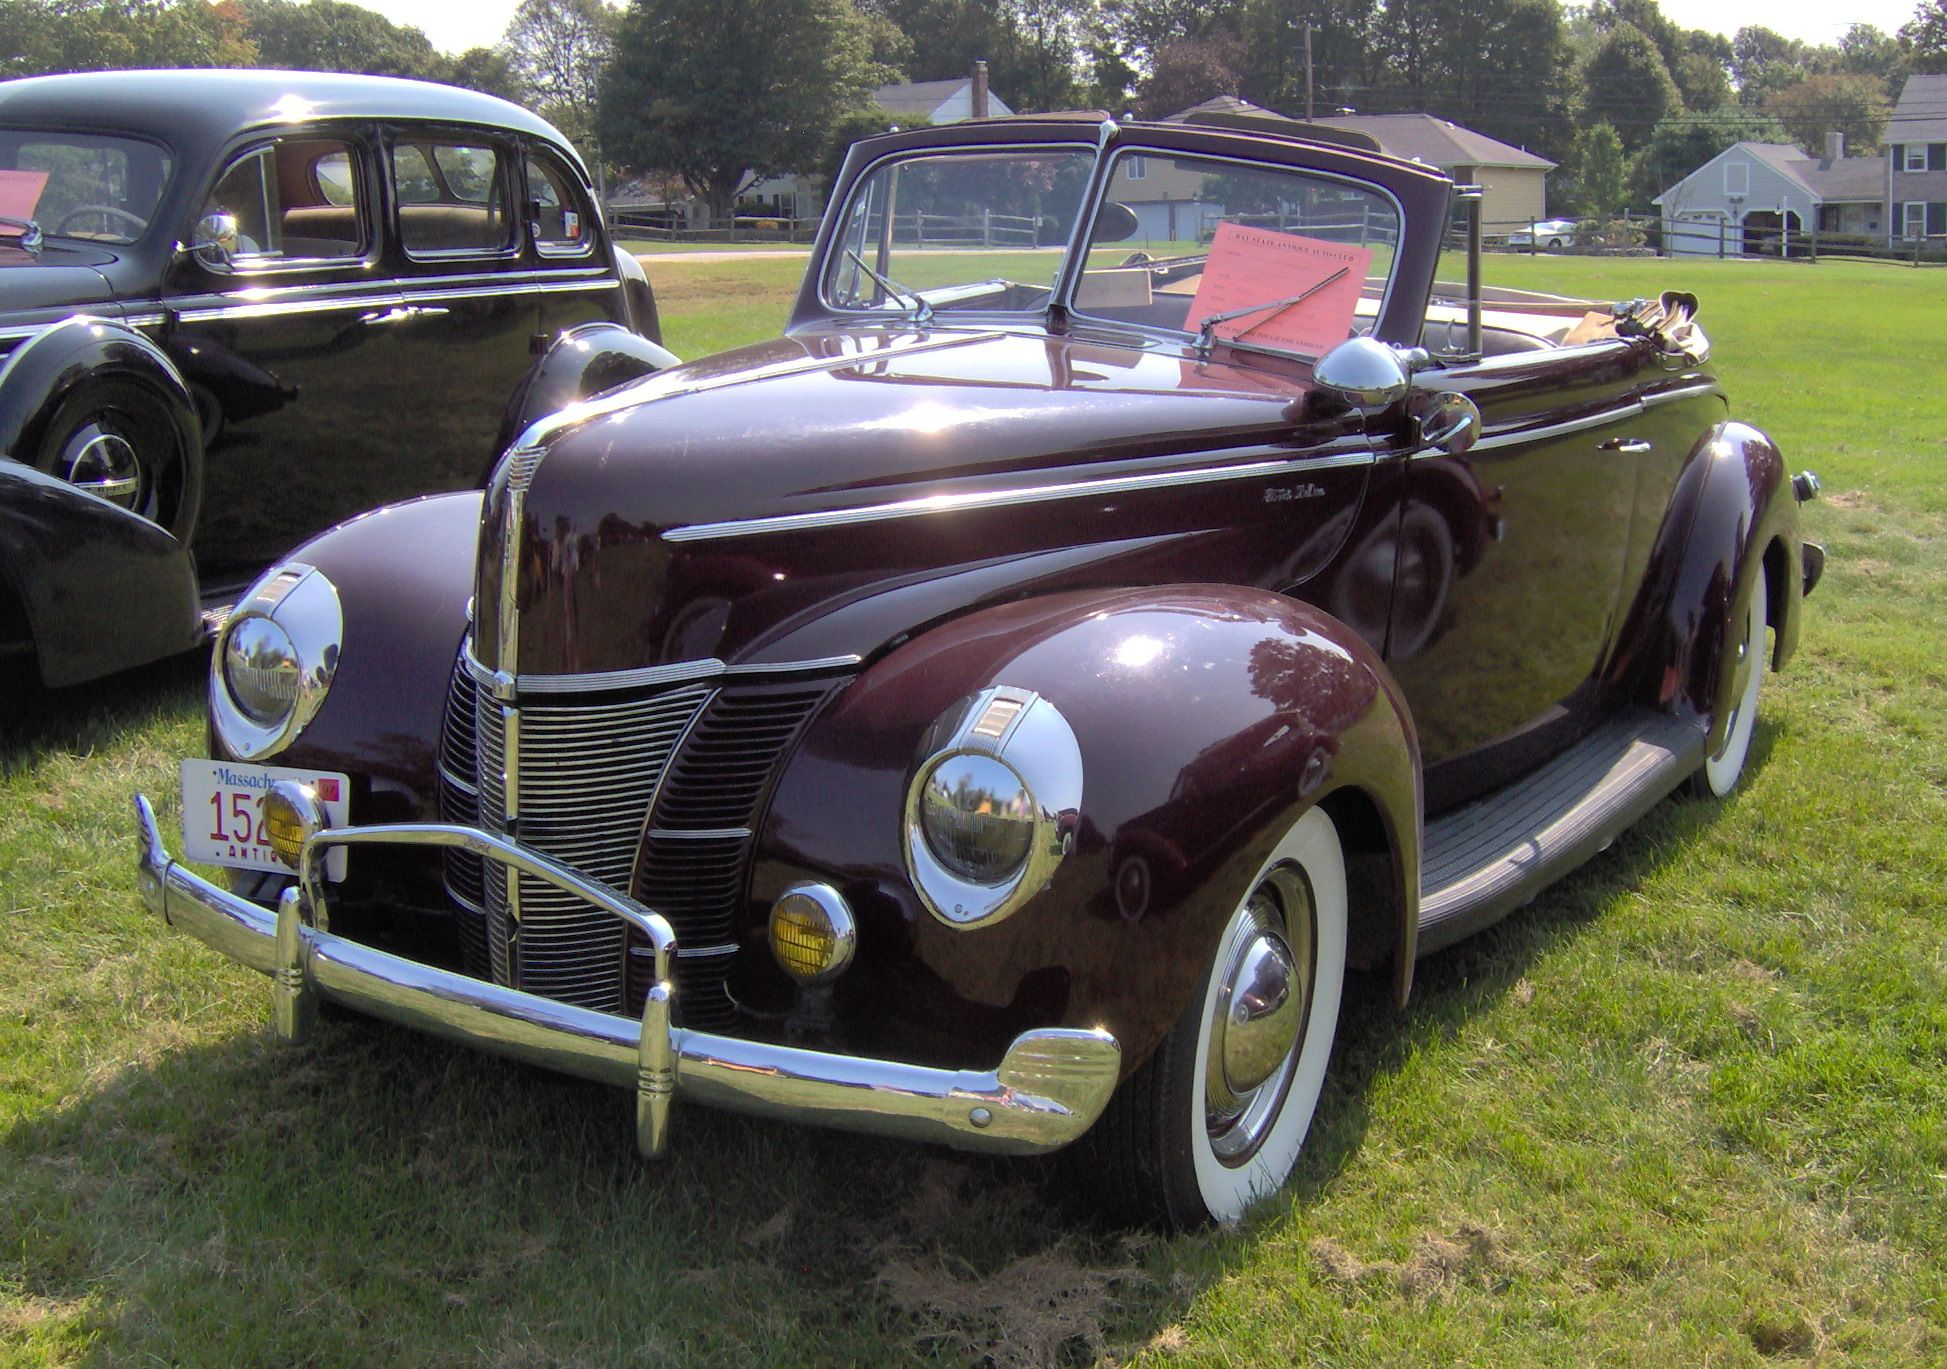 Image Detail for - File:1940 Ford DeLuxe convertible.JPG - Wikipedia ...